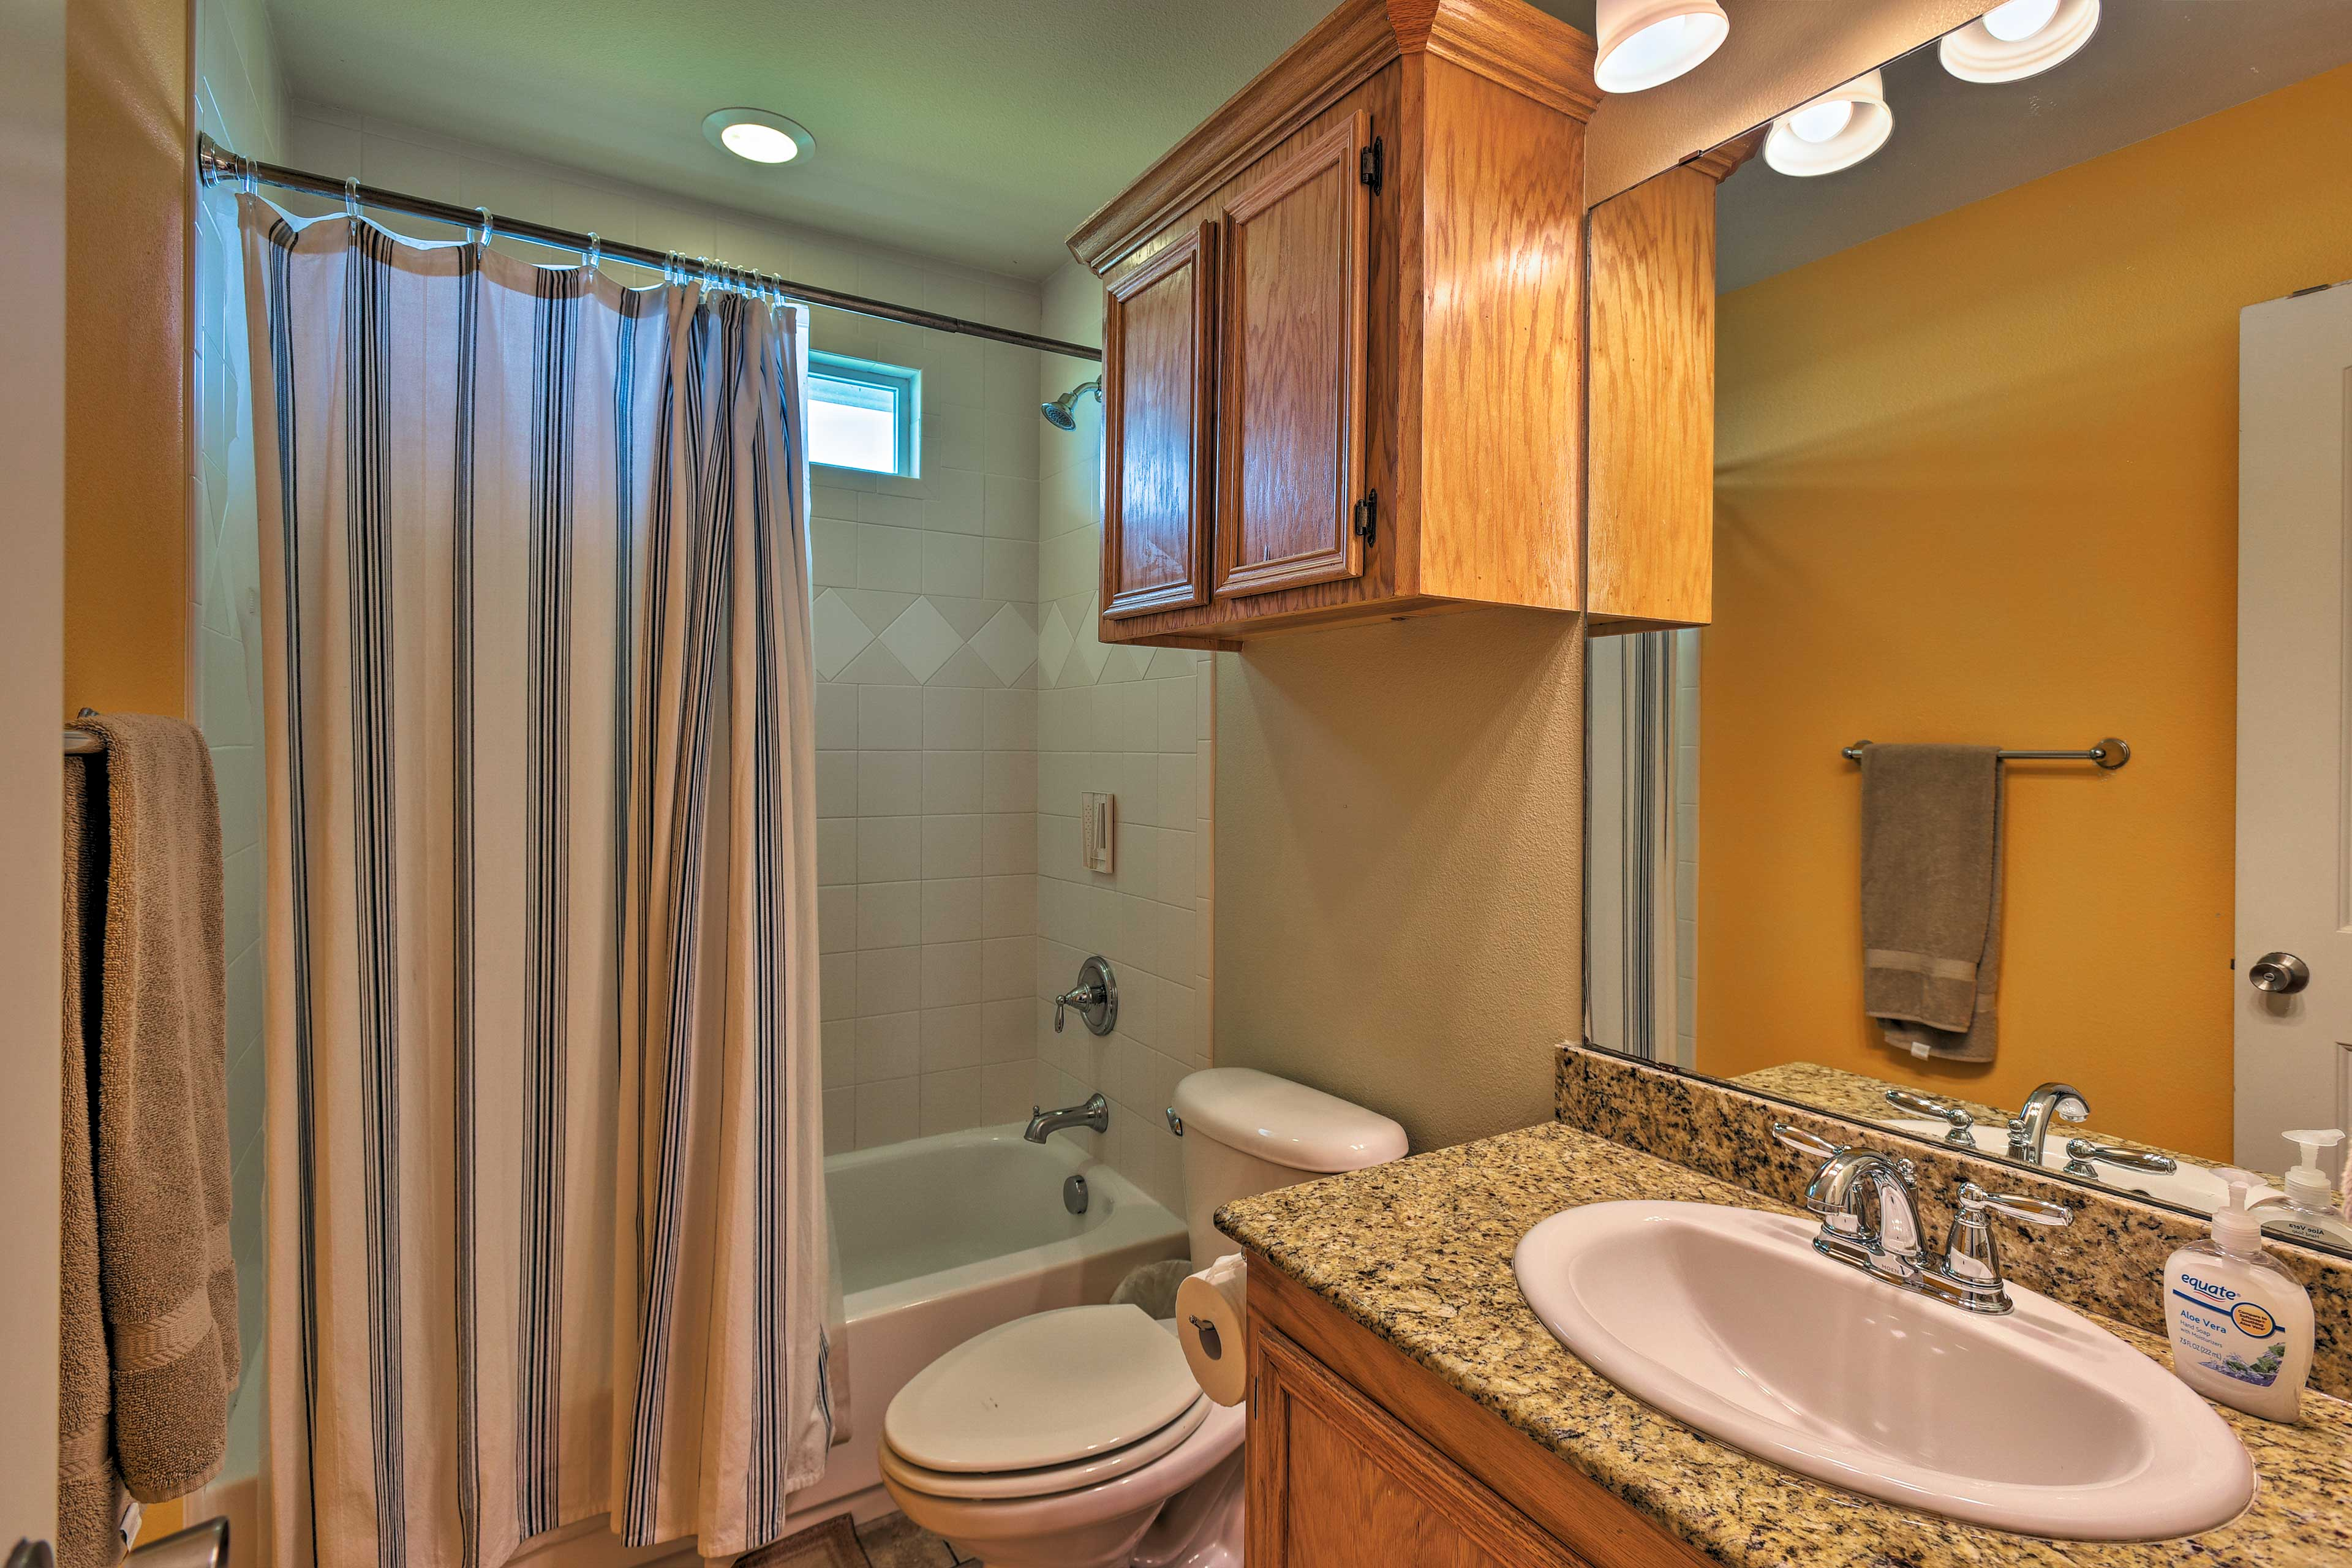 There is plenty of space to primp and refresh in privacy.